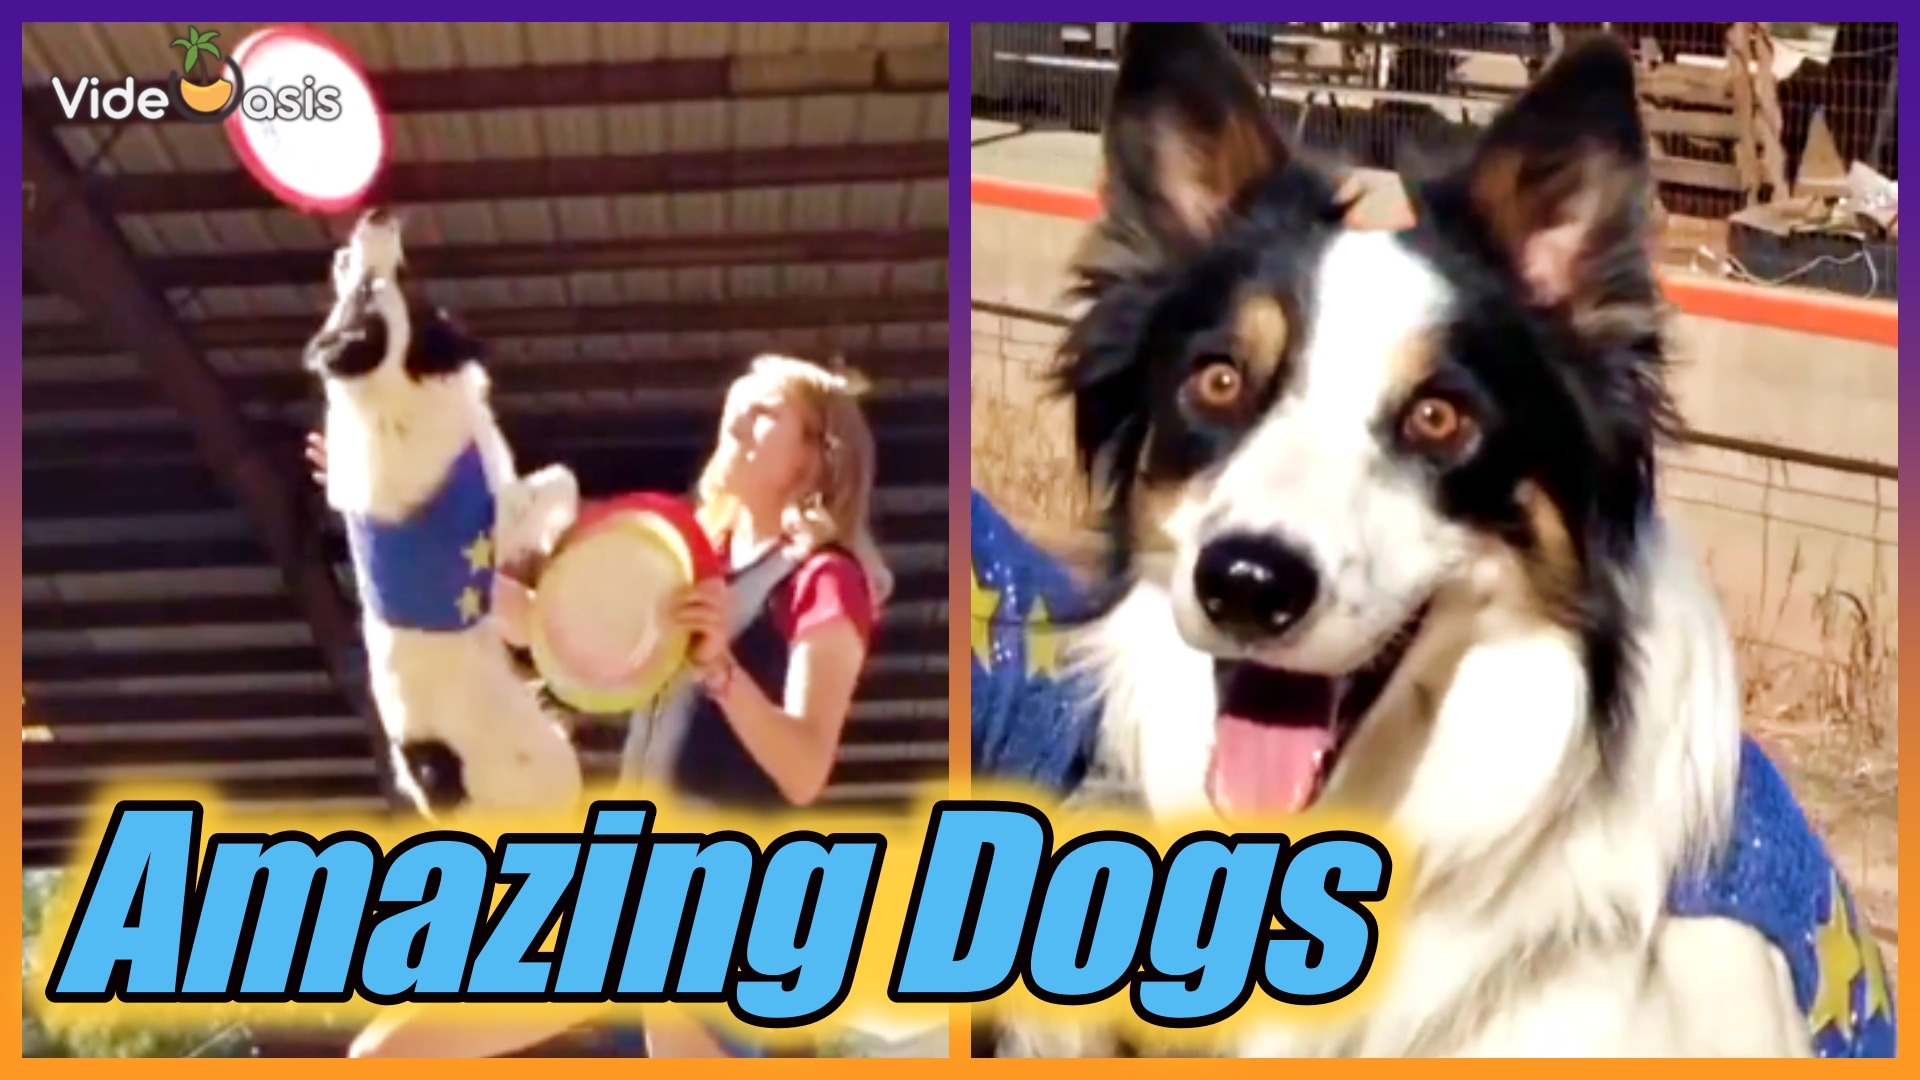 These Stunt Dogs Will Make You Astonished|VideOasis